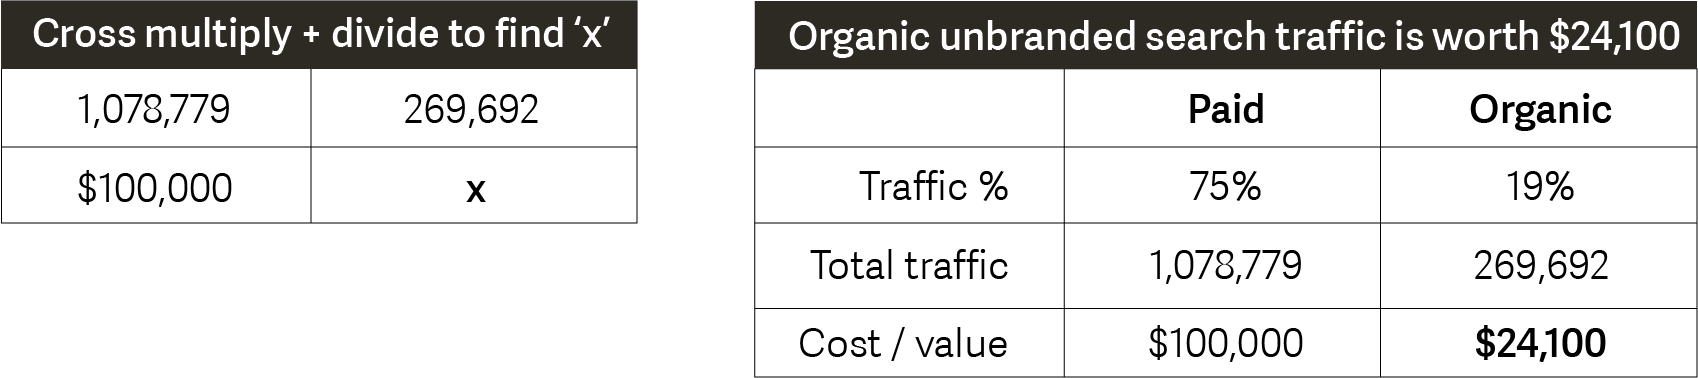 Calculating value of unbranded search traffic.png